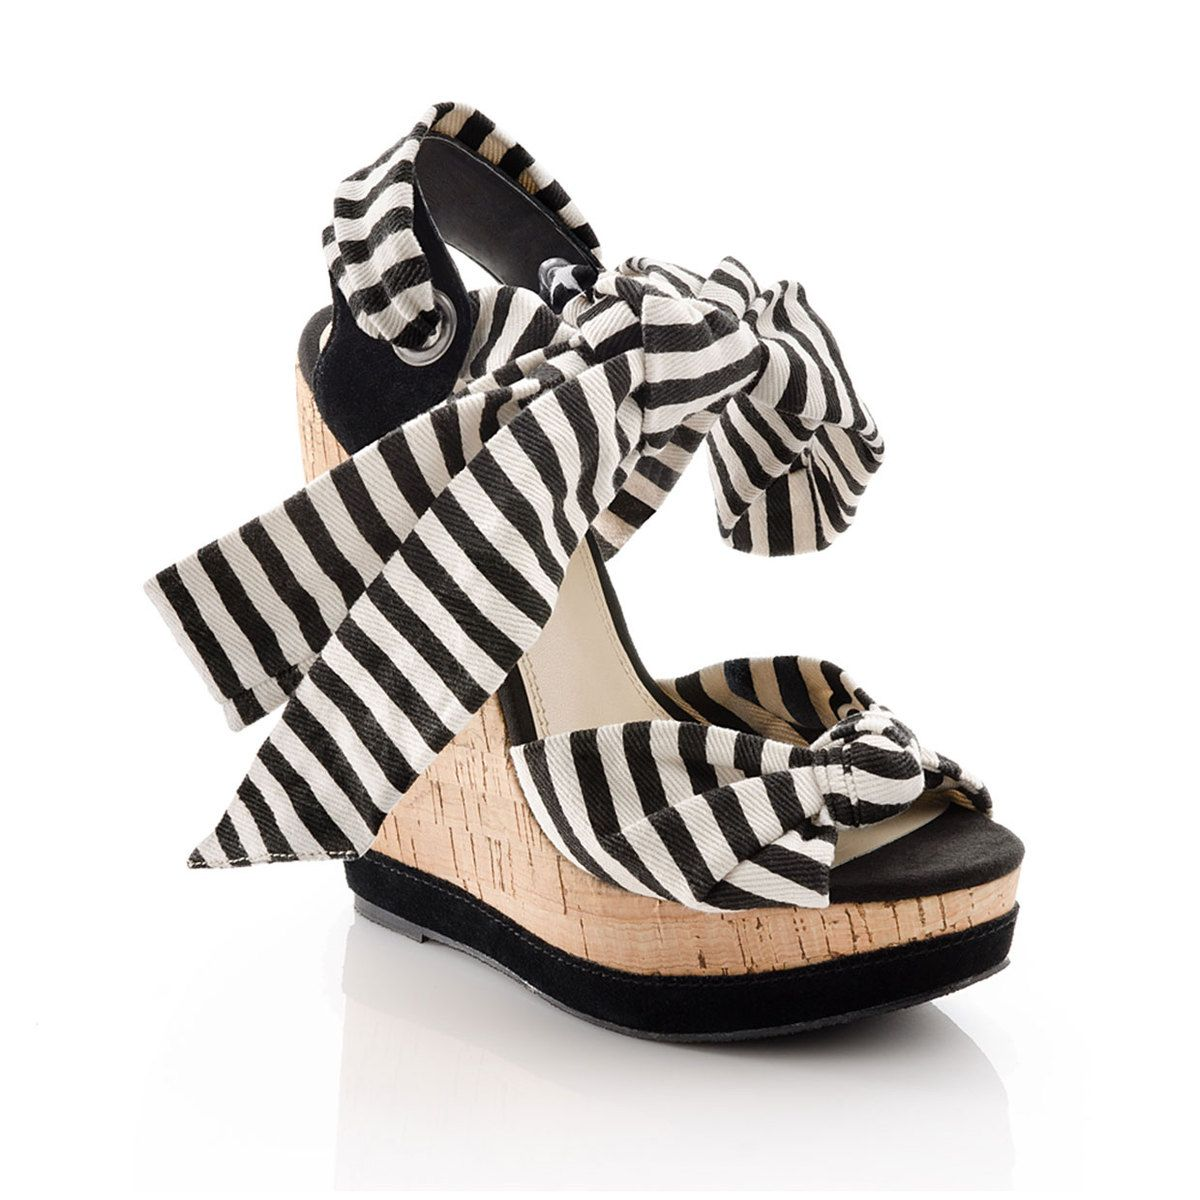 Kimberly Wedge in  Black + White Stripes #sandals